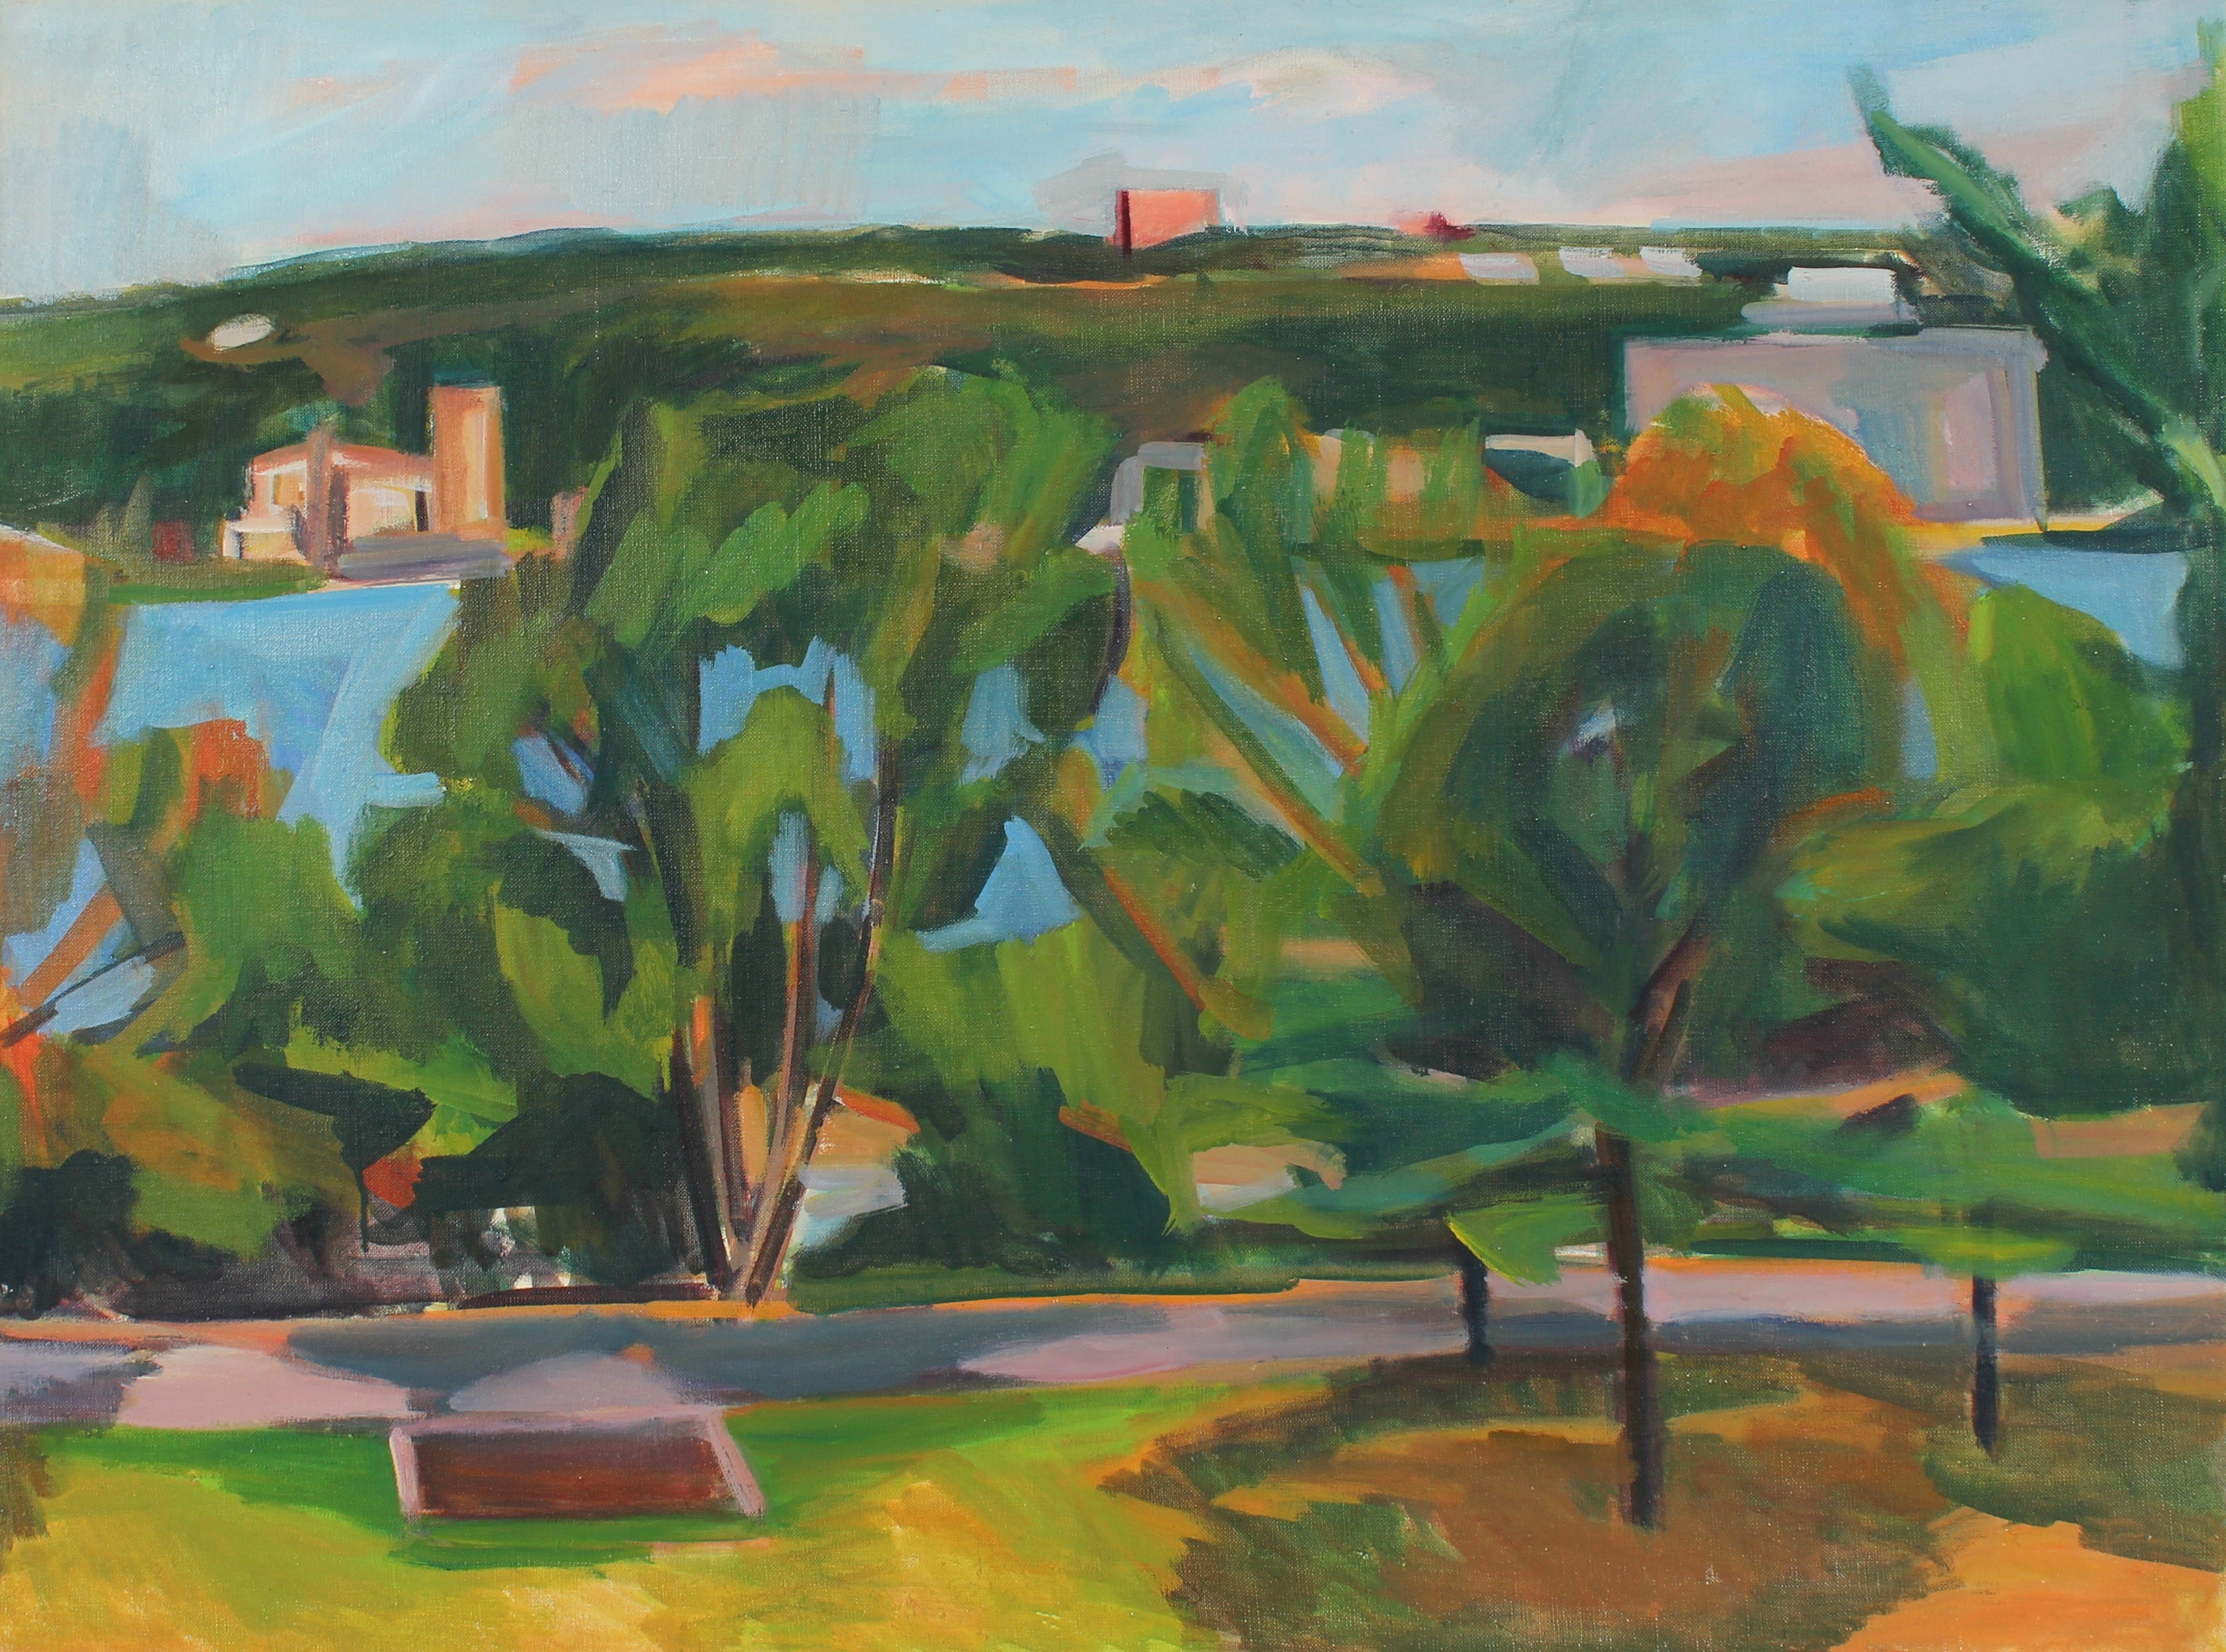 Cityscape with Trees and Lake, Oil on Canvas, 20th Century